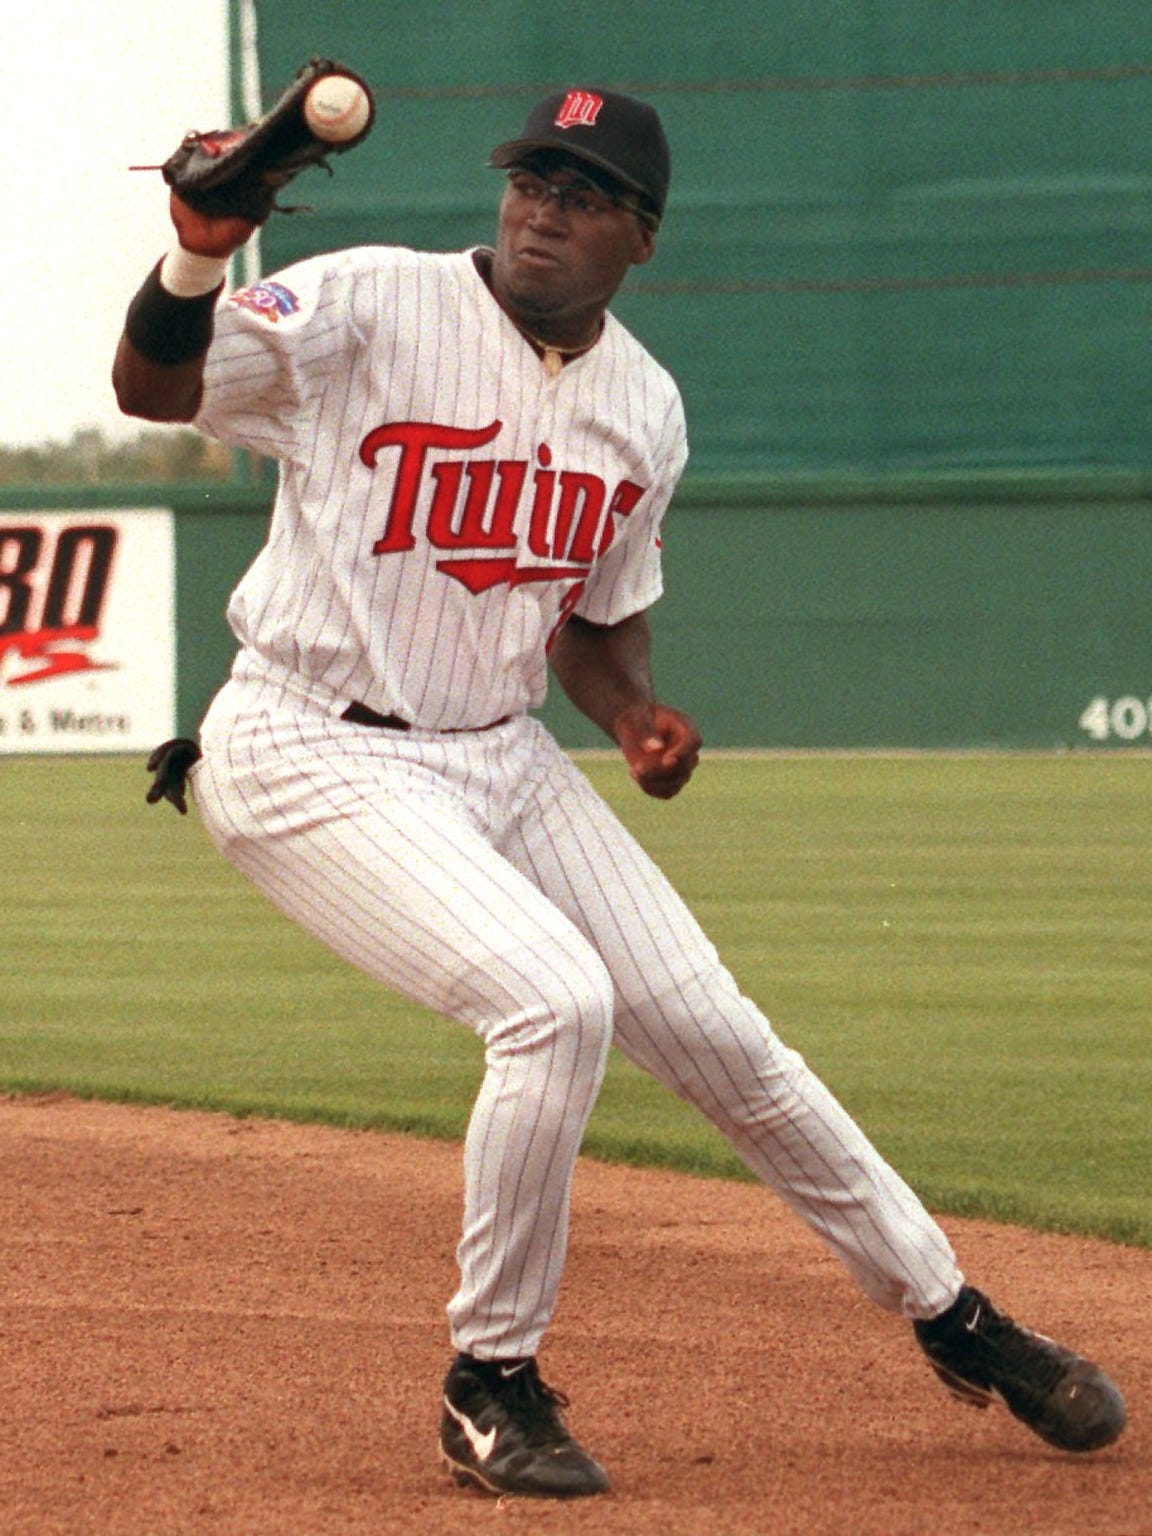 David Ortiz fields a ground ball at Hammond Stadium as a first baseman for the Minnesota Twins iduring spring training n 1999.